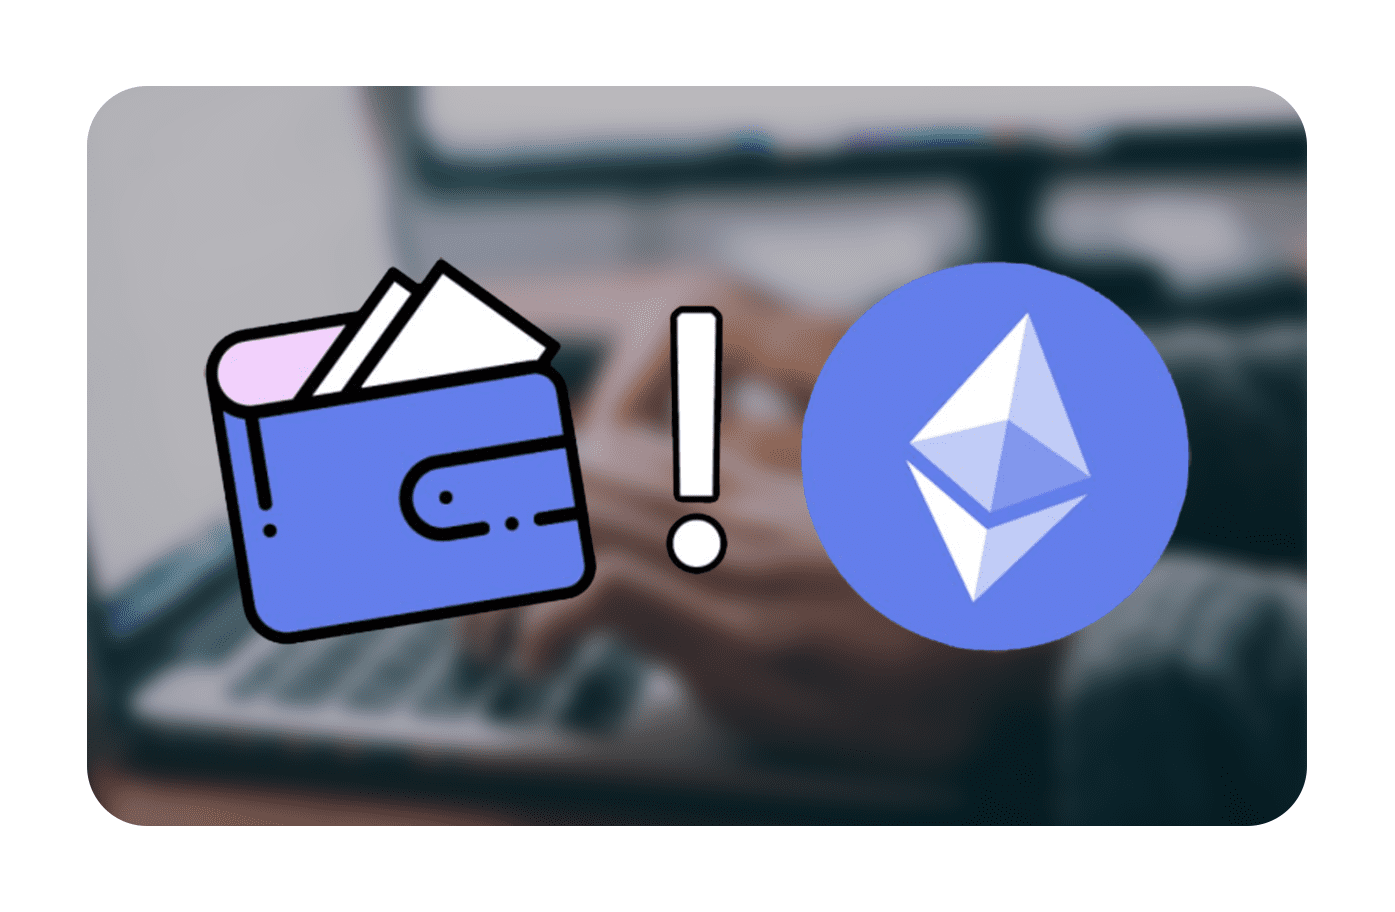 ethereum wallets - types and safety